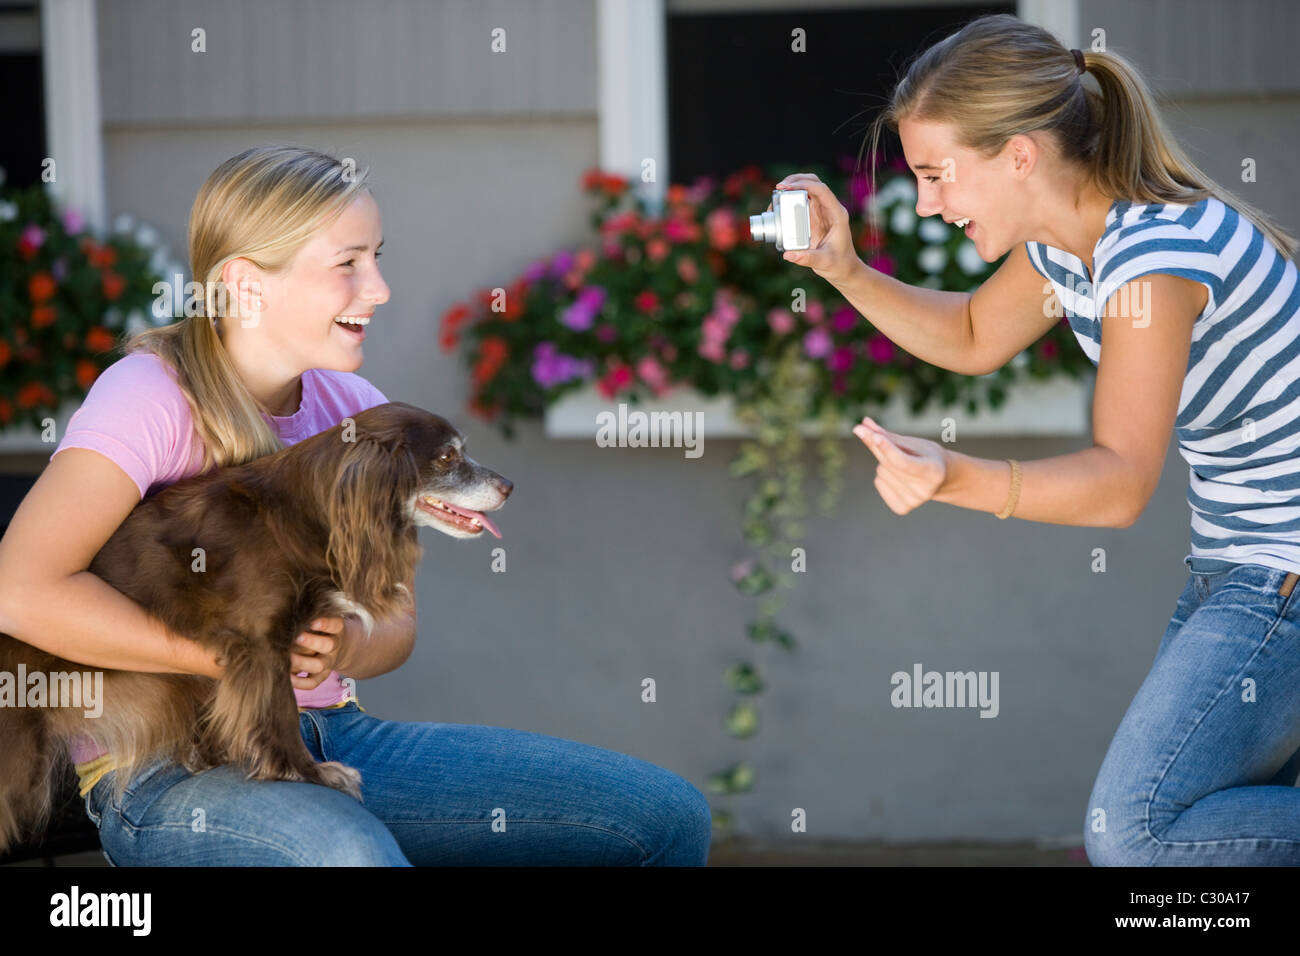 Teen girl poses with her dog while best friend takes photo with digital camera - Stock Image